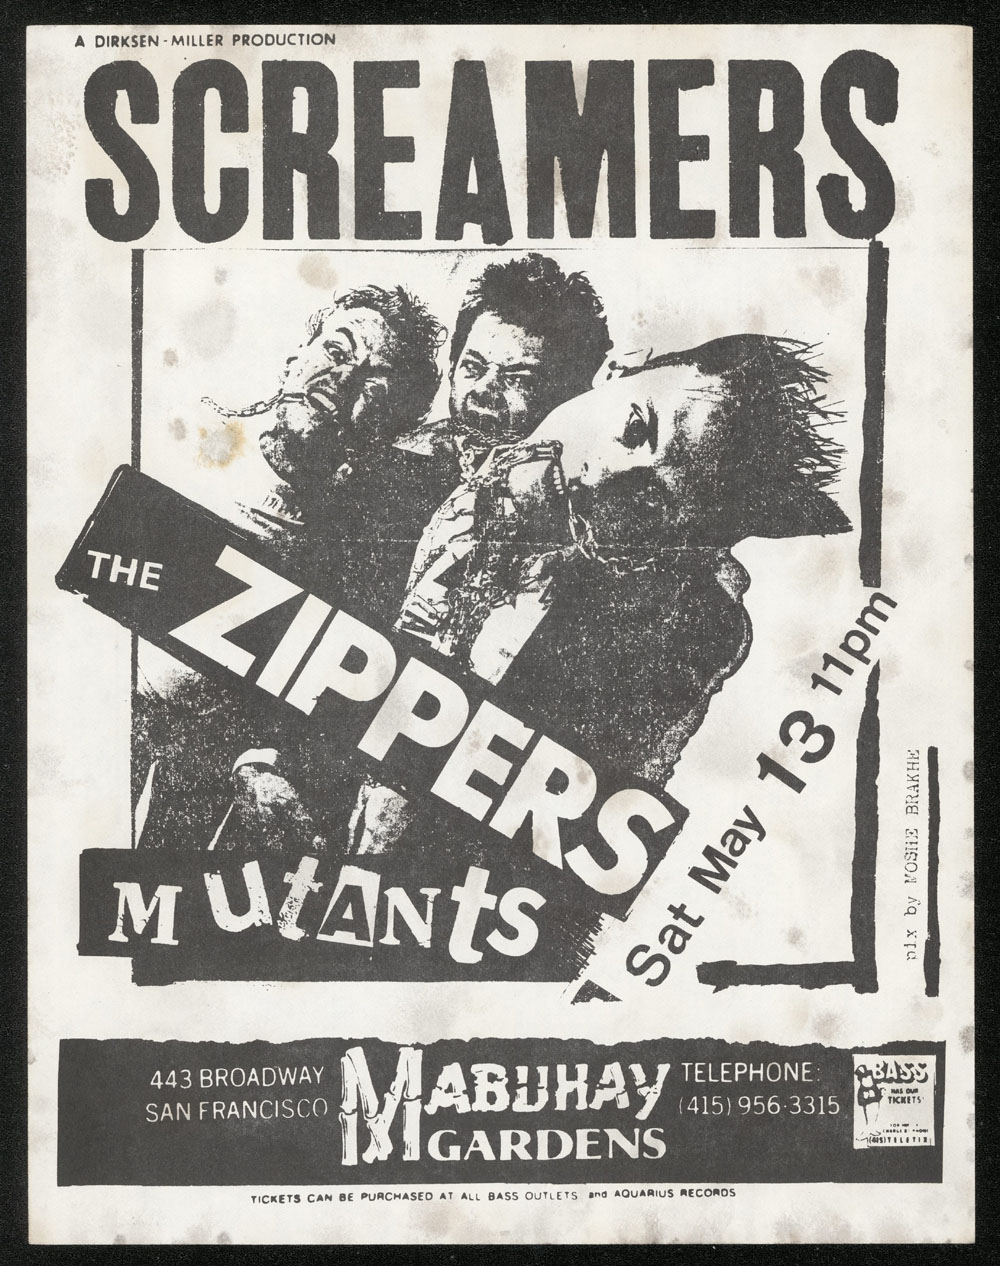 SCREAMERS w/ Zippers, Mutants at Mabuhay Gardens